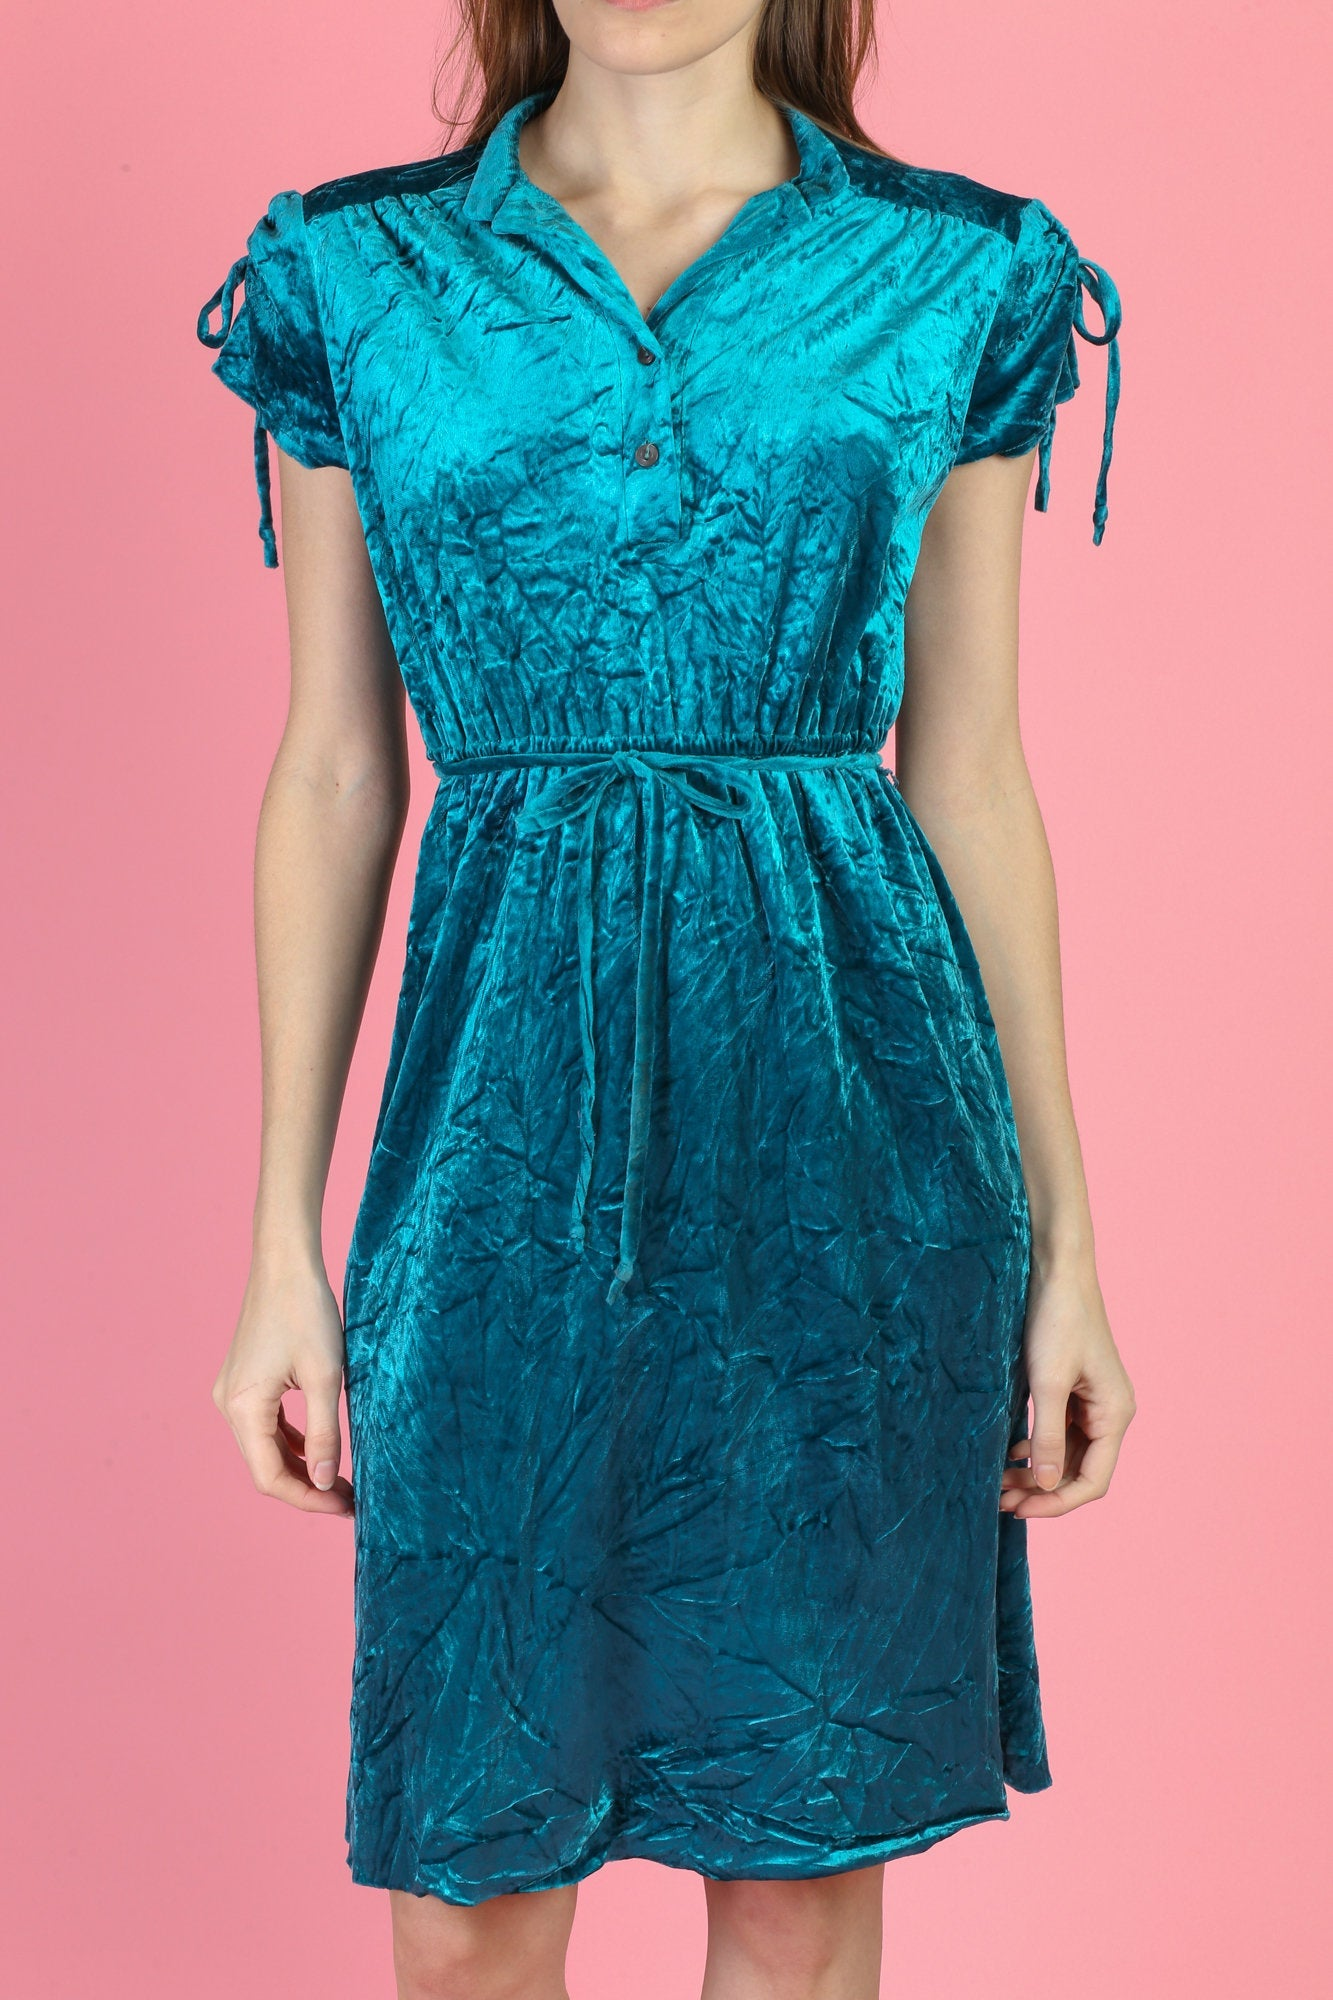 70s Blue Crushed Velvet Mini Dress - Small